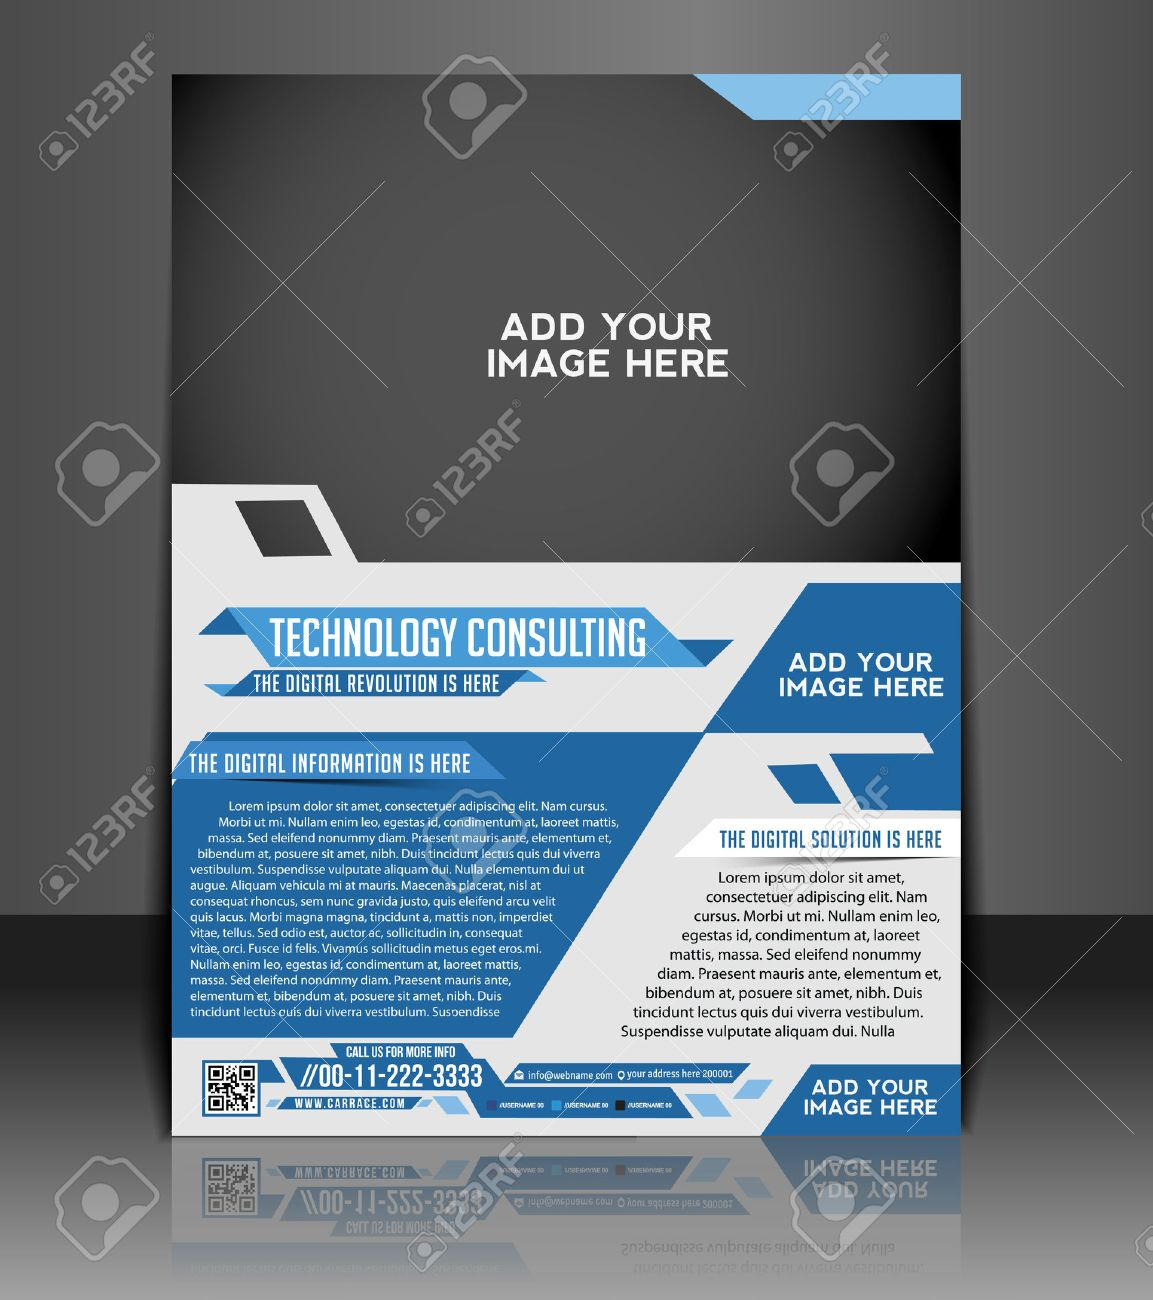 Technology Consulting Flyer & Poster Template Design Stock Vector - 26824715